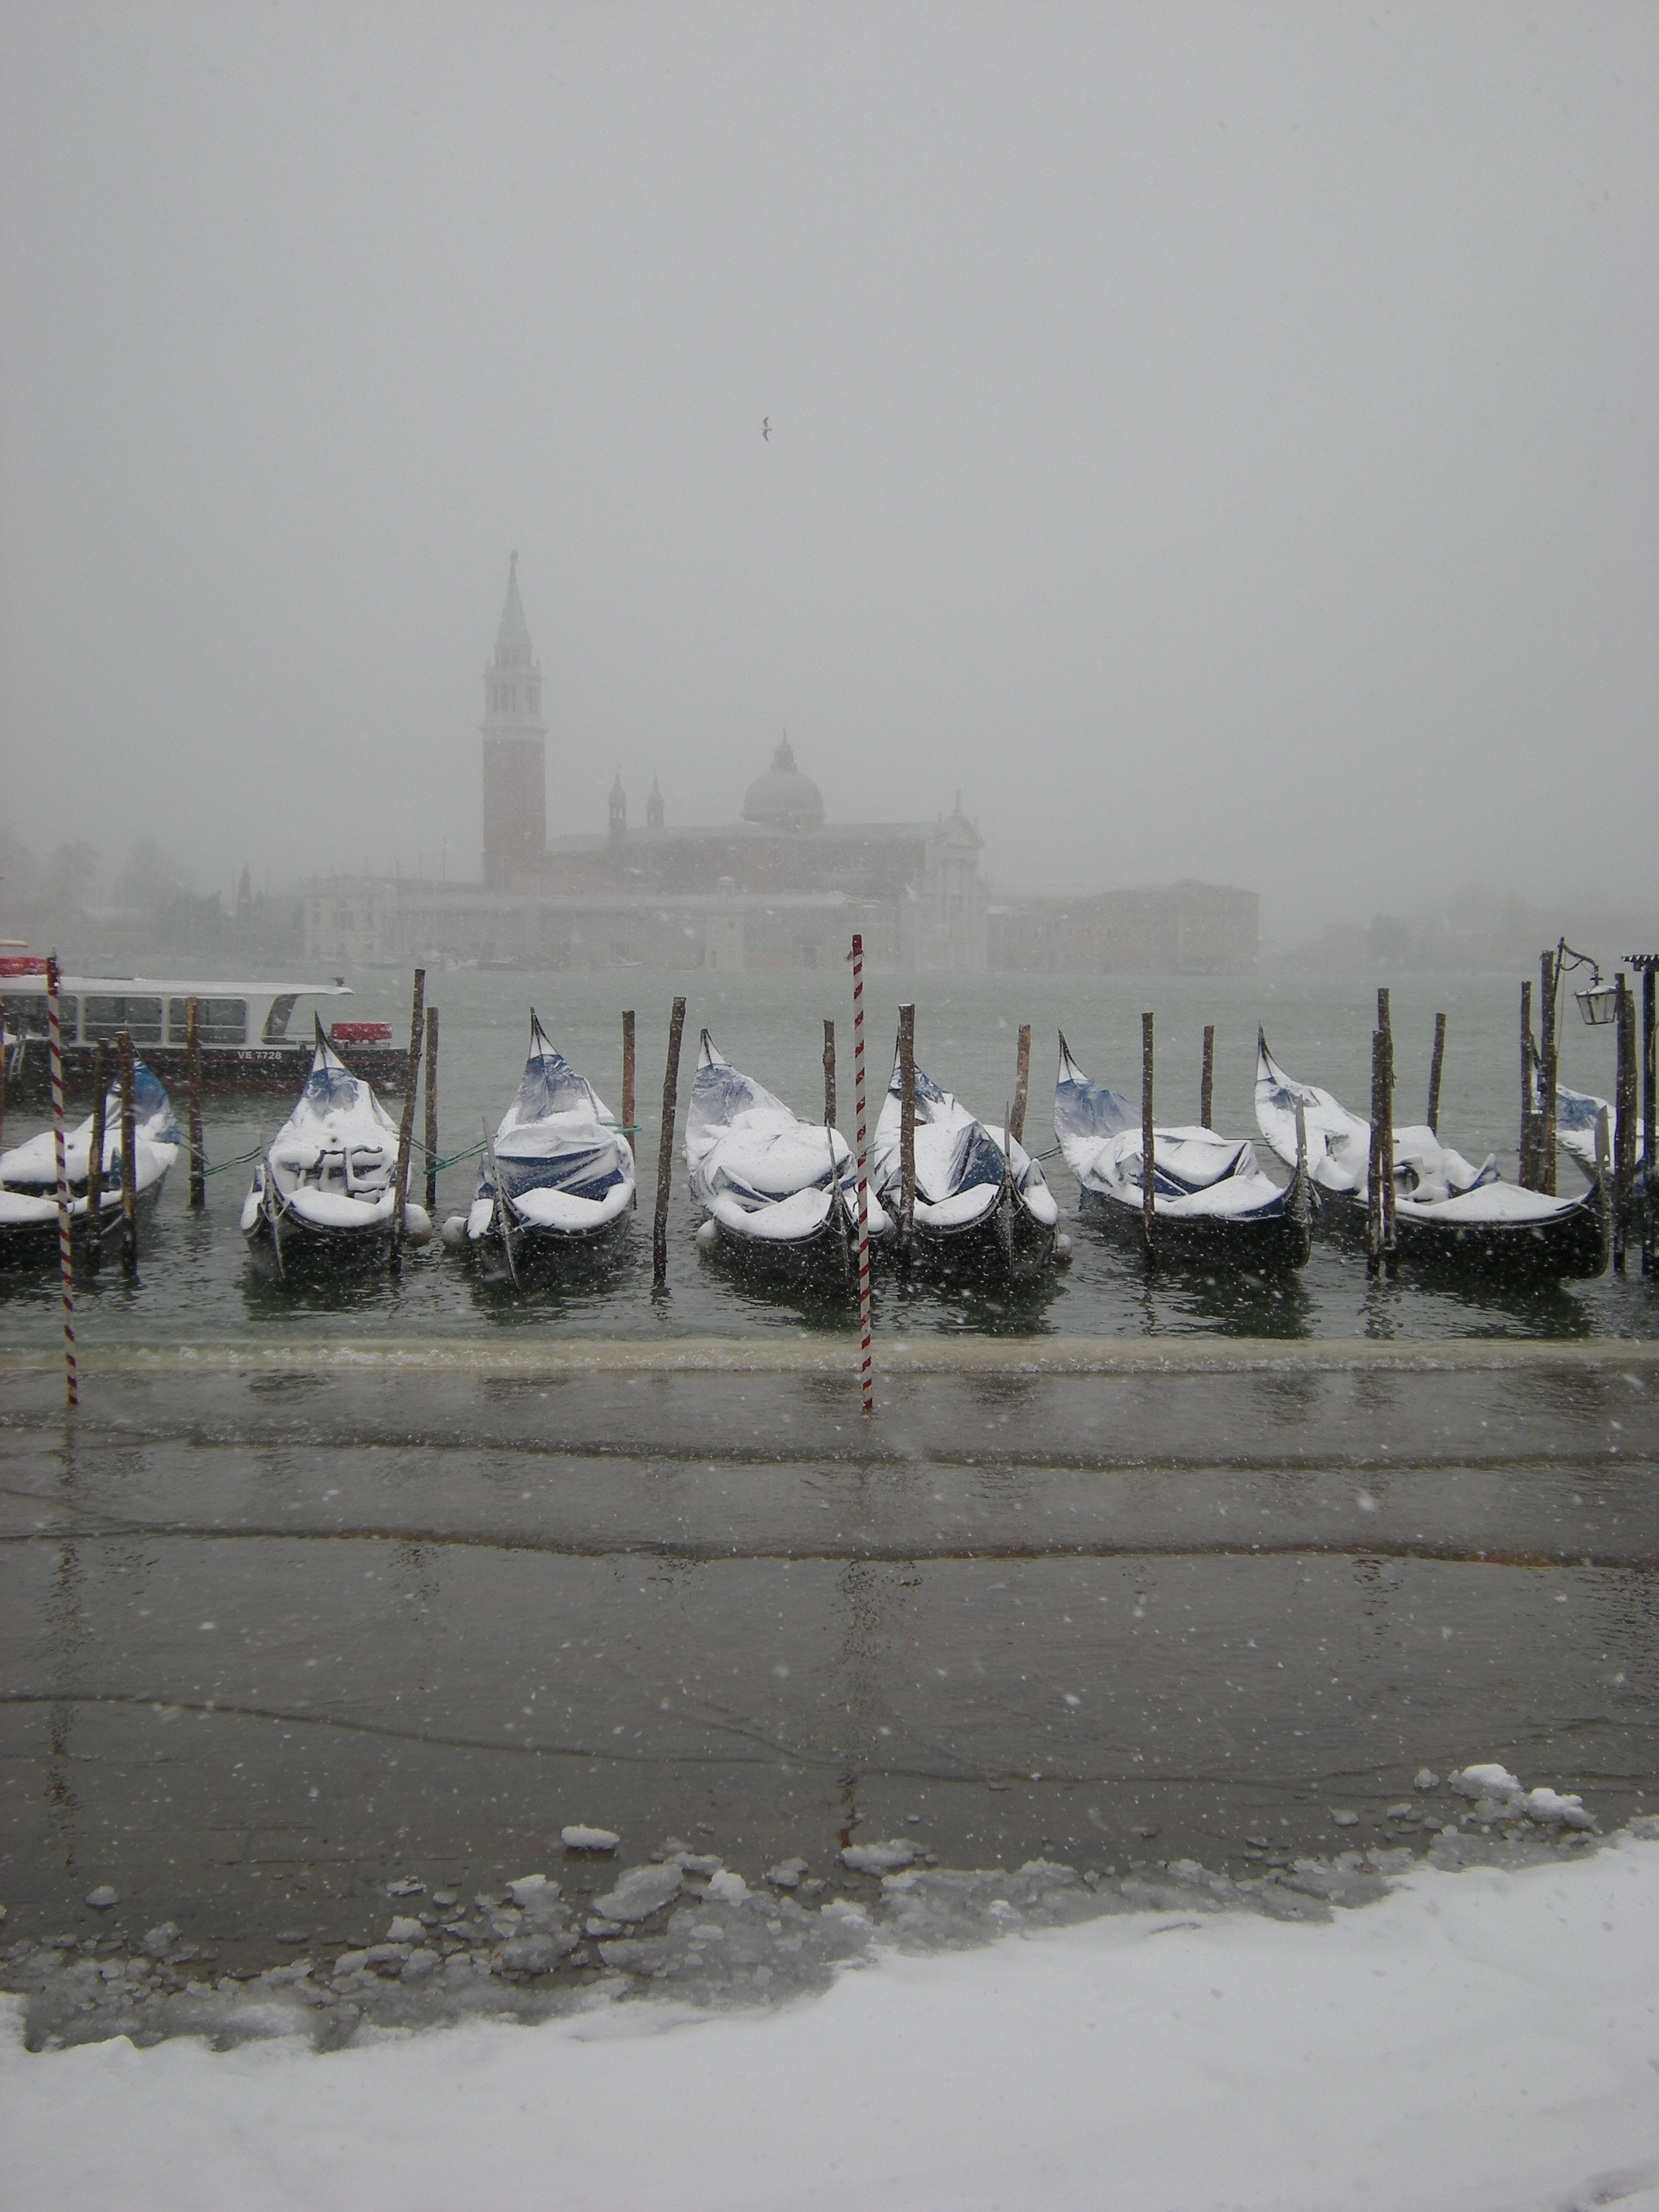 Venice with Snow. Photo © by Piertro deScarpis